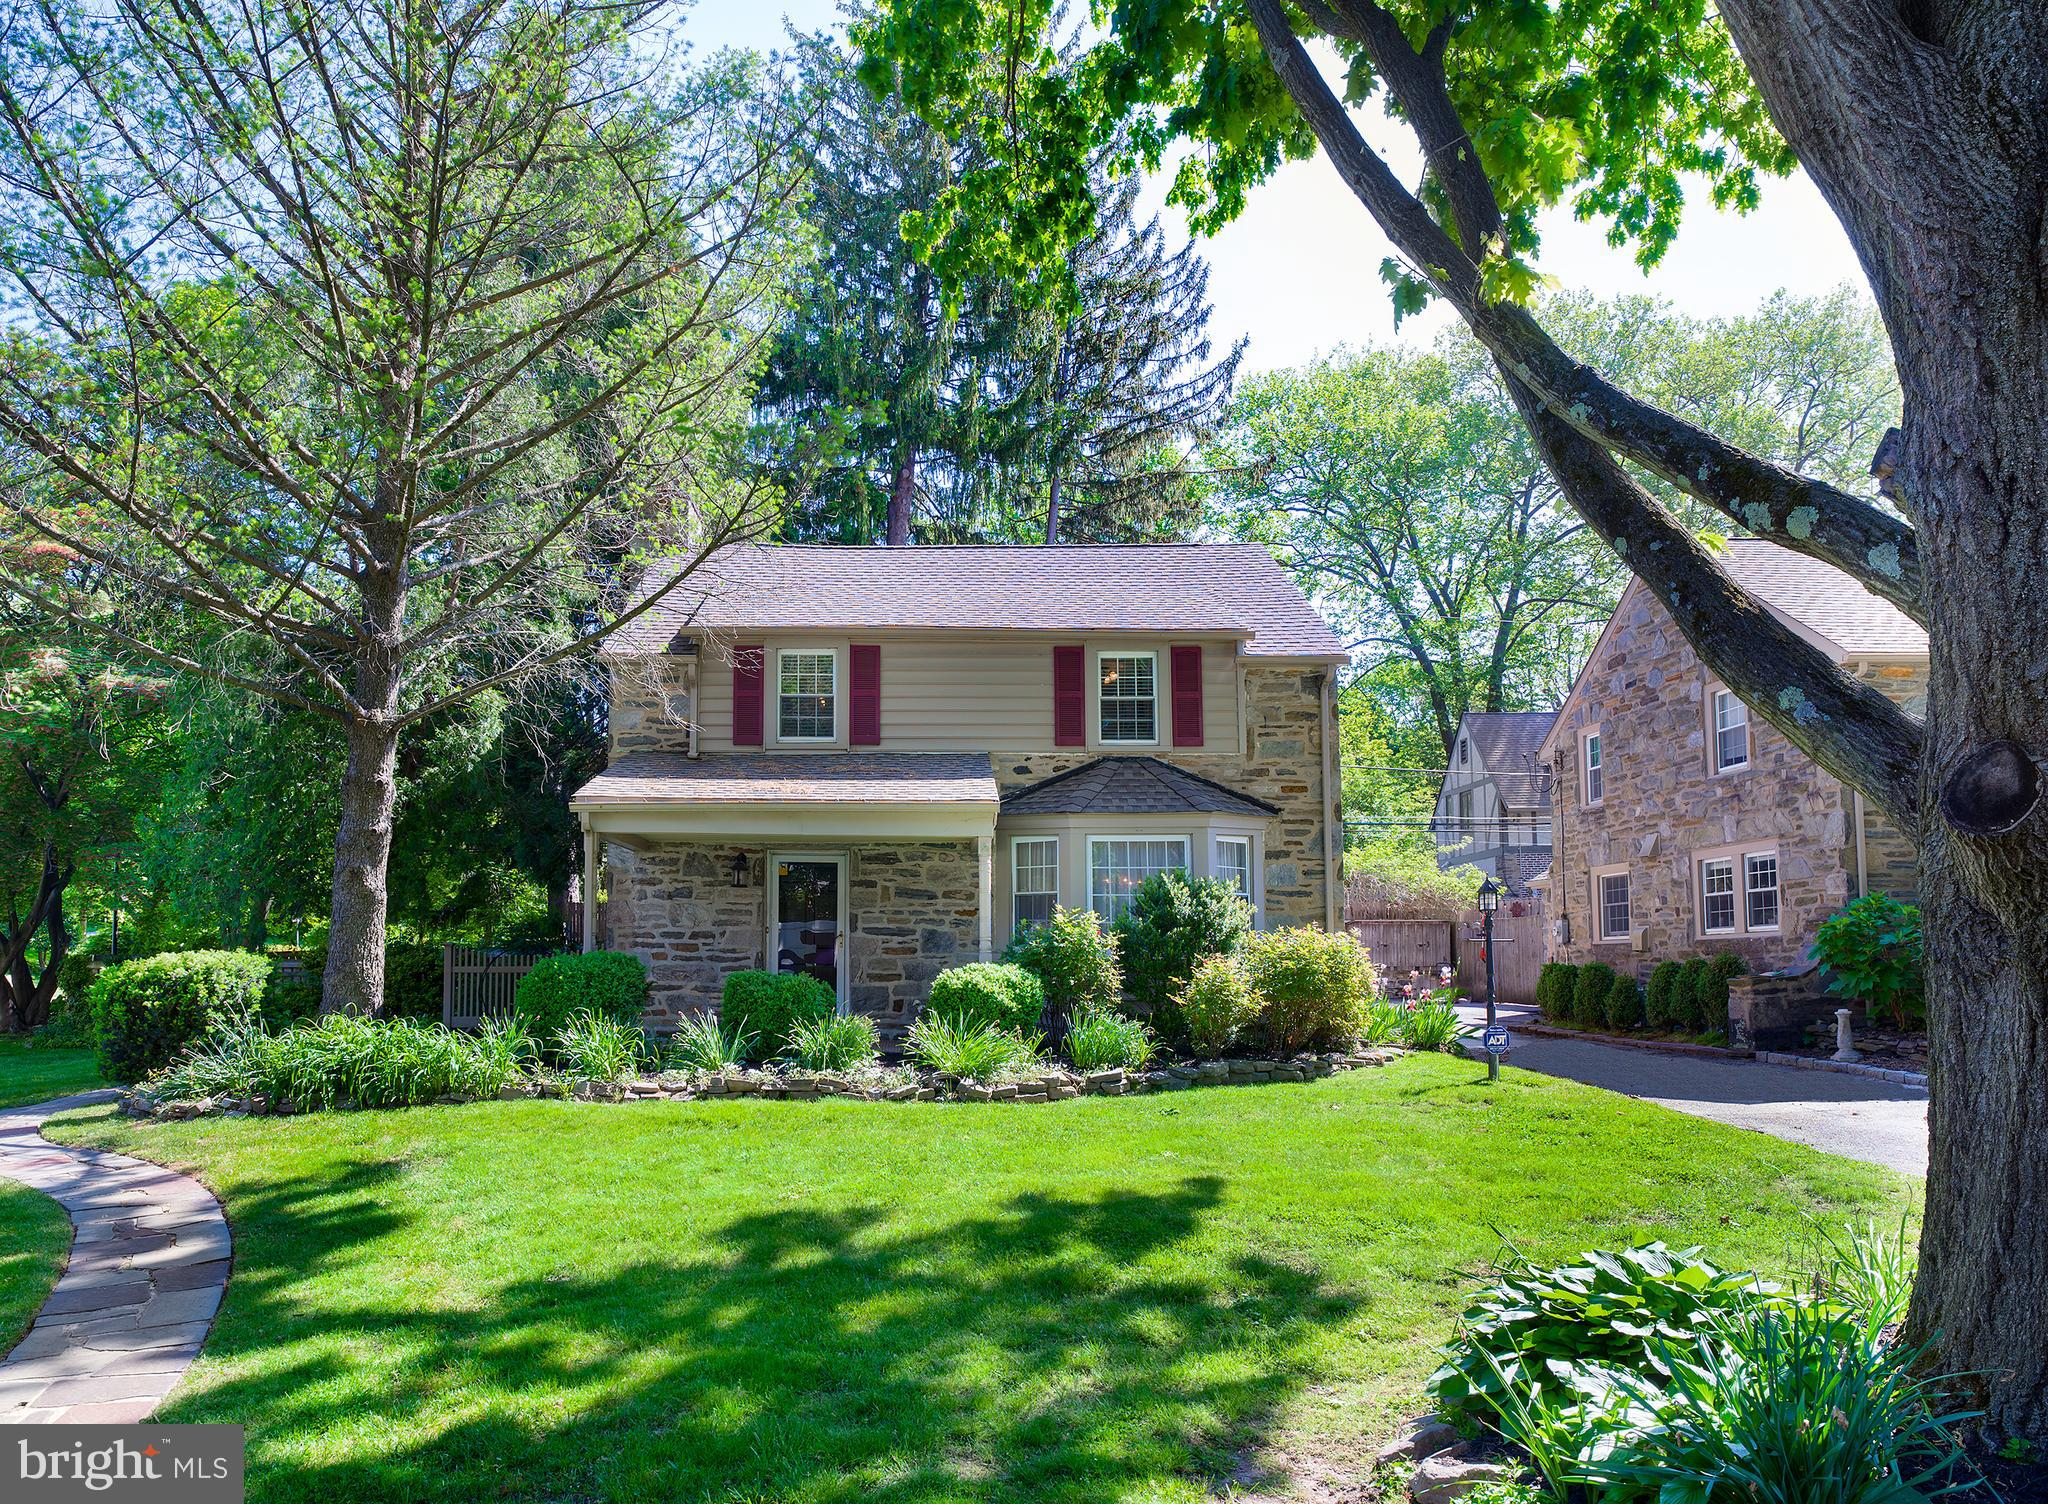 Enjoy the best of all worlds – great schools, low taxes, and incredible proximity to the culture of Center City – at 21 Allendale Road, a charming 3 bedroom, 2.1 bath stone colonial ideally located in prime Wynnewood. Set on lovely landscaped grounds on a large coveted corner lot, the home invites comfortable living, in a fabulous family-friend neighborhood offering picturesque beauty and a true feeling of close community.  Current owners have loved and well cared for this special gem for many years taking full advantage of the generous living space and exceptional address. Sit outside on the lovely covered porch and read or relax with a coffee while savoring the serenity. Or spend time outdoors on the rear patio dining alfresco and entertaining.   Inside is gracious and welcoming with hardwood floors and tasteful details, featuring a generous living room centered by a wood-burning fireplace to gather around with loved ones and guests. Share meals and celebrate holidays around the table in the formal dining room that is conveniently connected to the sunny kitchen, appointed with wood cabinets and granite countertops. Lounge, play games, watch TV and have a snack in the nearby family room, and when the weather is nice, step out the glass door to the timeless brick paver patio with plantings and privacy fencing.  Three sizable bedrooms reside on the upper level and provide a quiet place to land at the end of a busy day. The primary bedroom has an en-suite bathroom, plus there is a full hall bath for secondary bedrooms. A semi-finished basement with a den, dry bar, powder room and lots of storage, shared driveway, and security alarm system are among the other highlights. Come fall in love with this special home and even more so, in the amazing location you have been looking for!